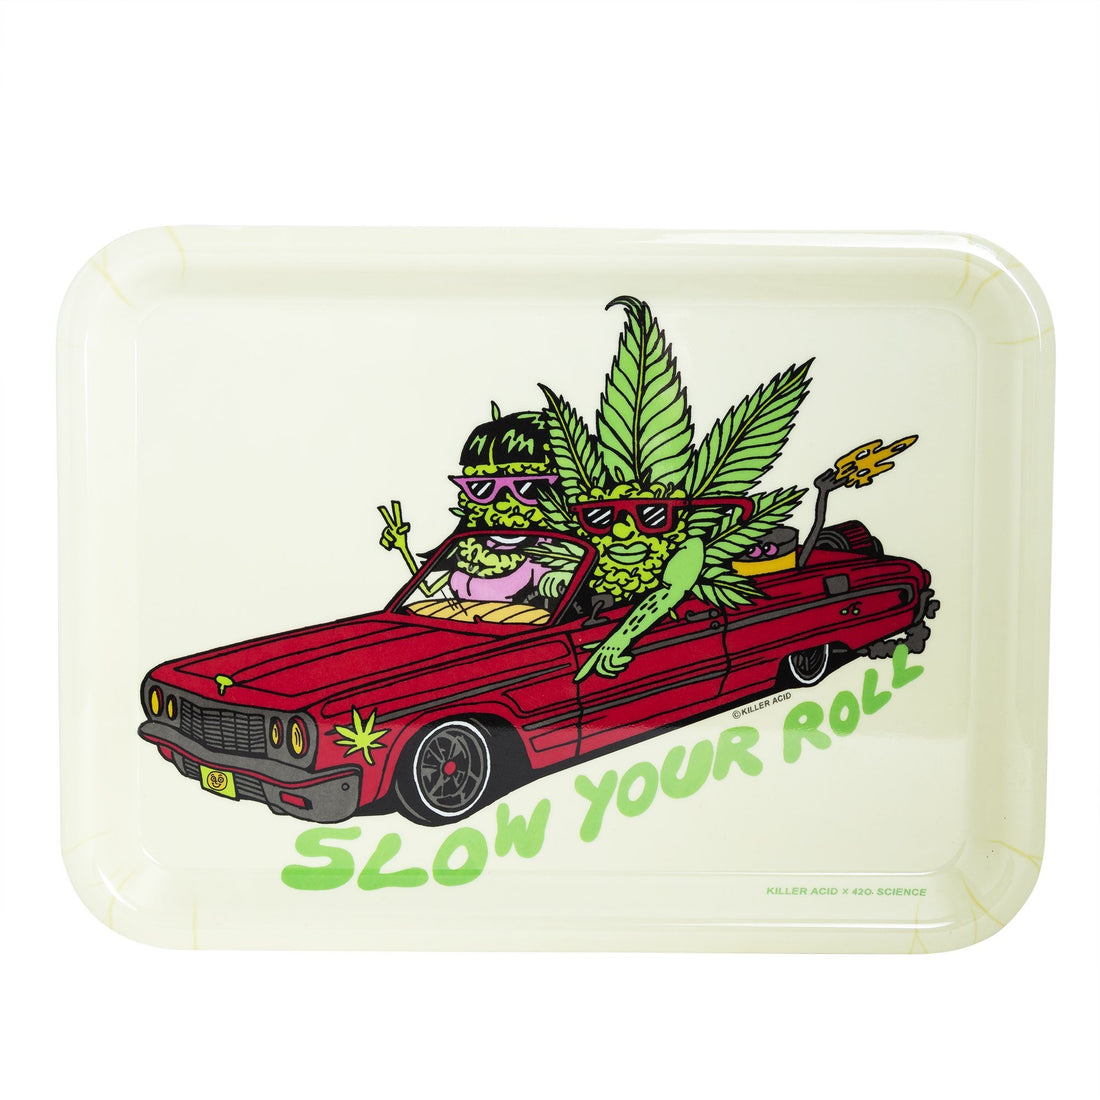 420 Science x Killer Acid Rolling Tray - Slow Your Roll - 420 Science - The most trusted online smoke shop.